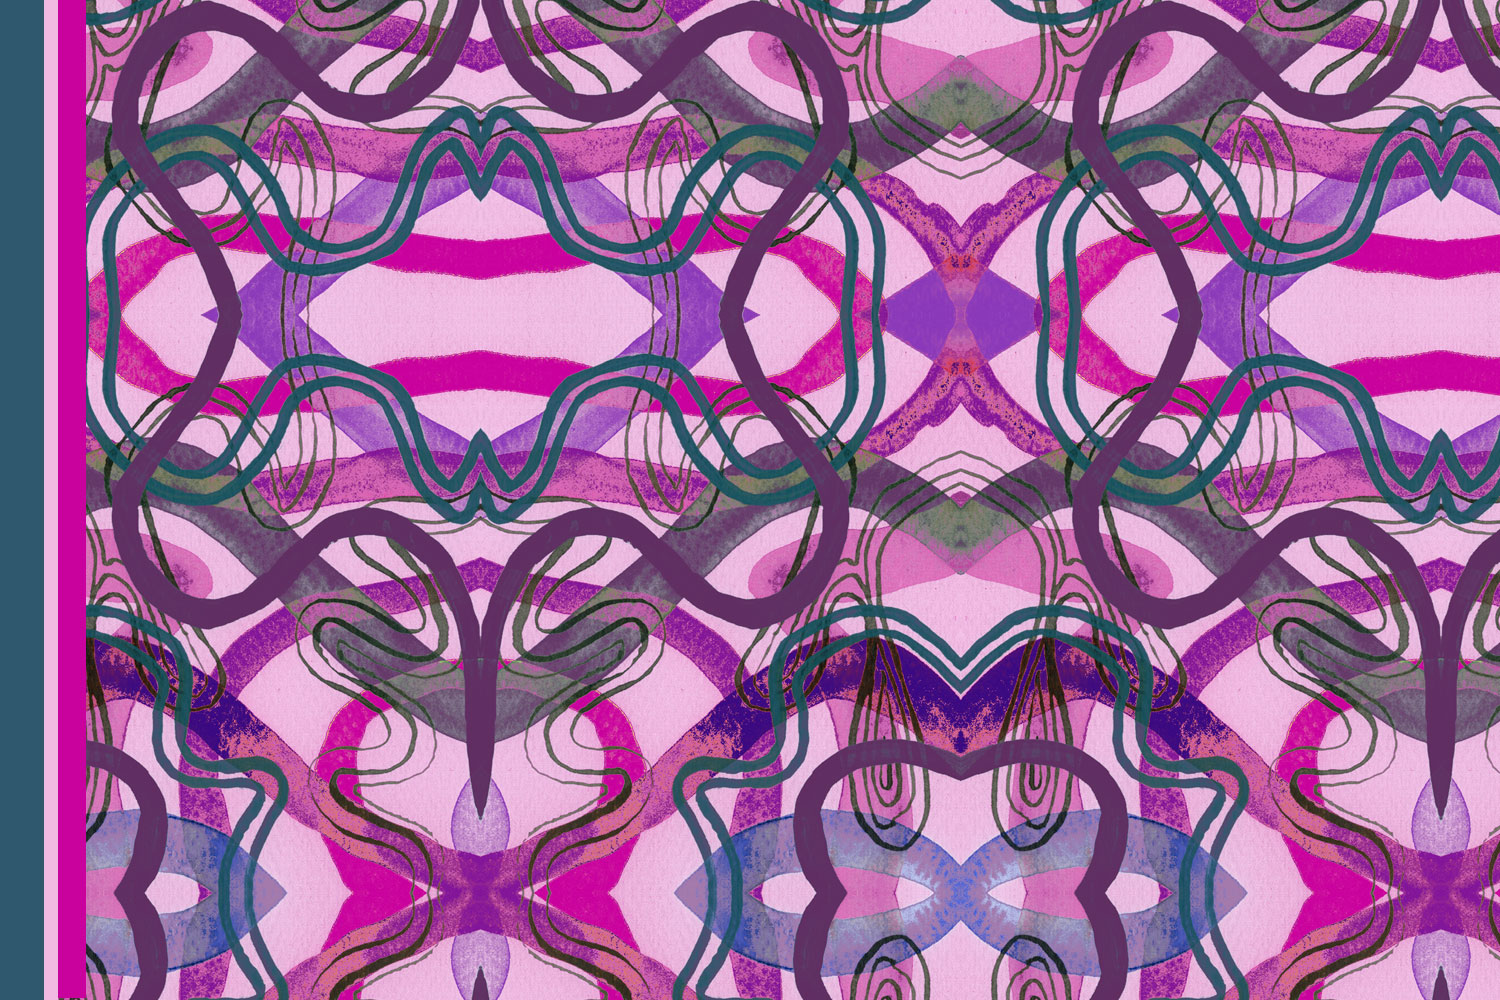 A hypnotic surface pattern design by Liz Nehdi